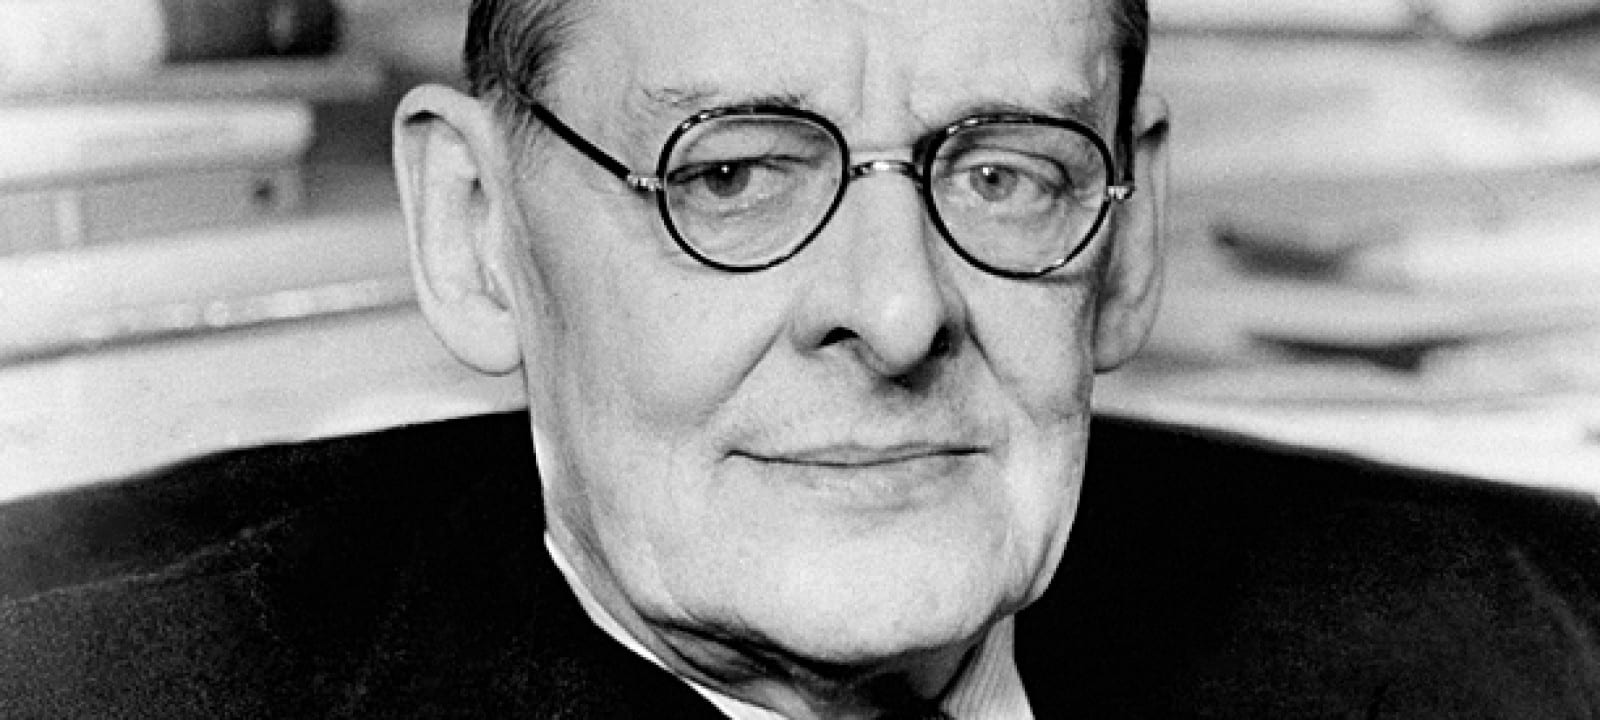 T.S. Eliot Overview: A Biography Of T. S. Eliot